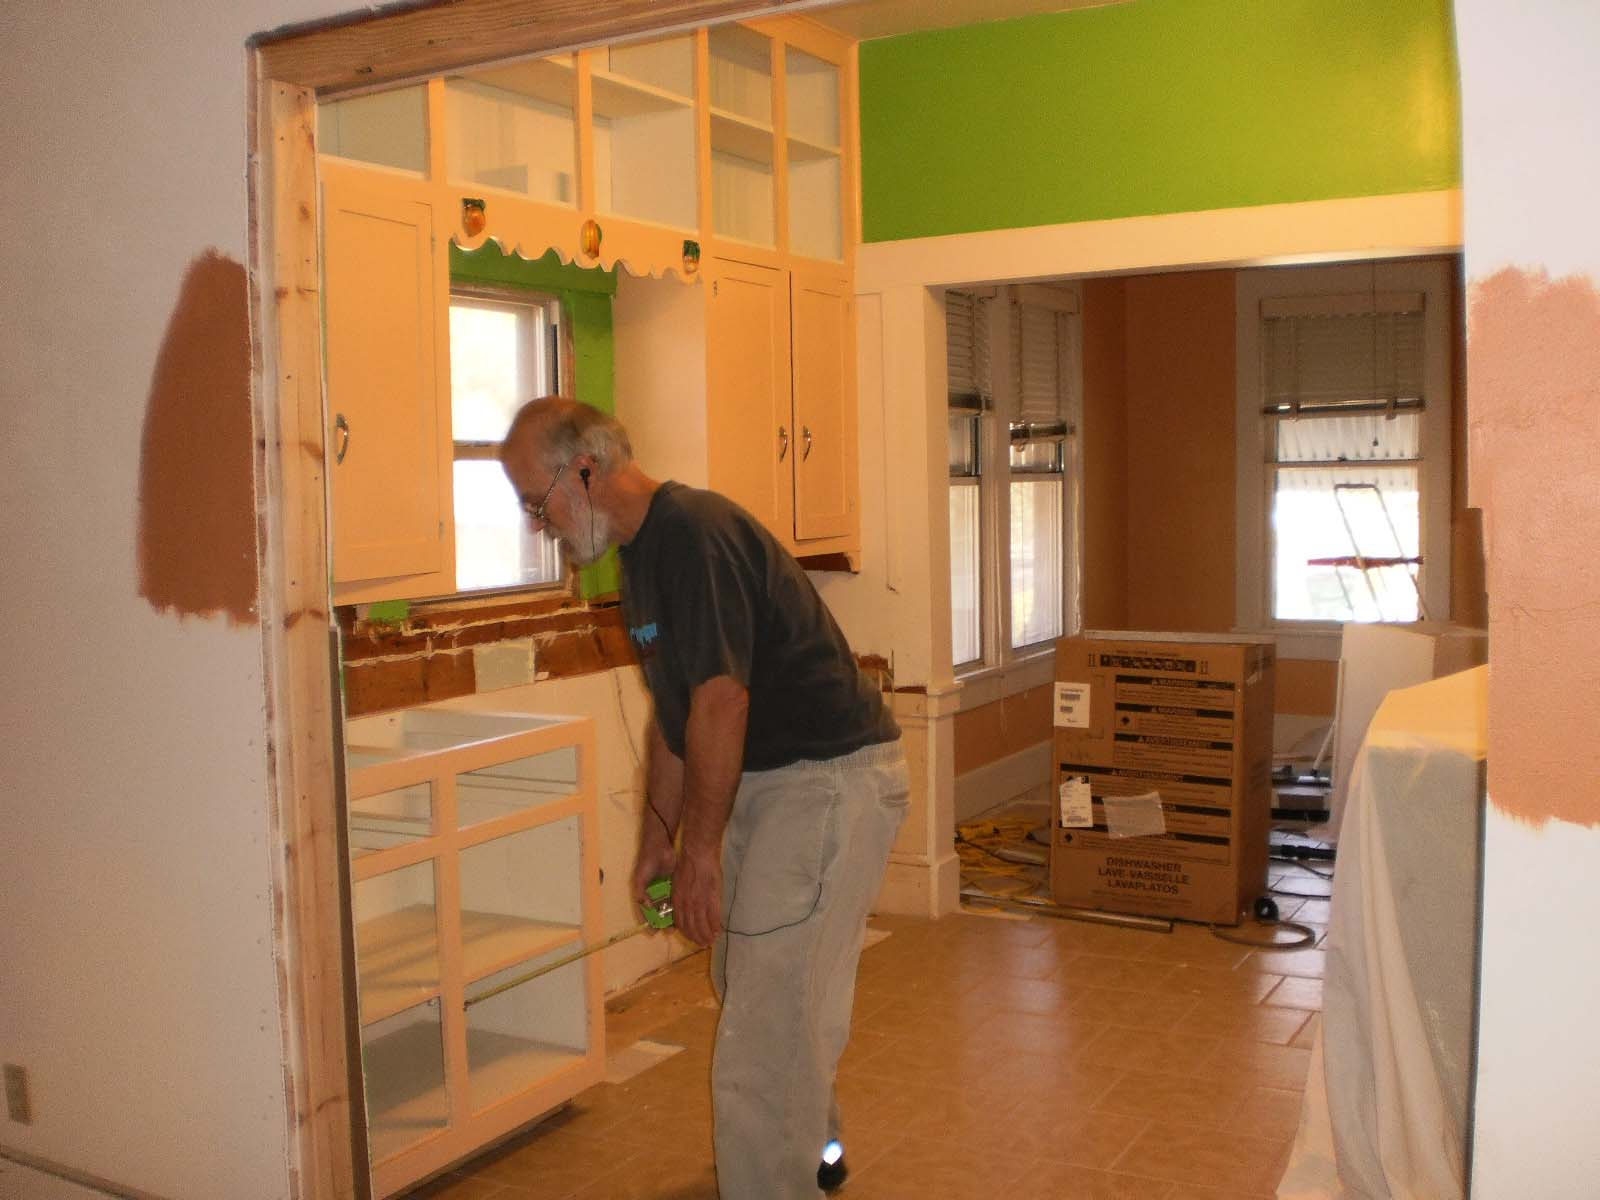 This photo shows the lefthand side of the kitchen with the new (small